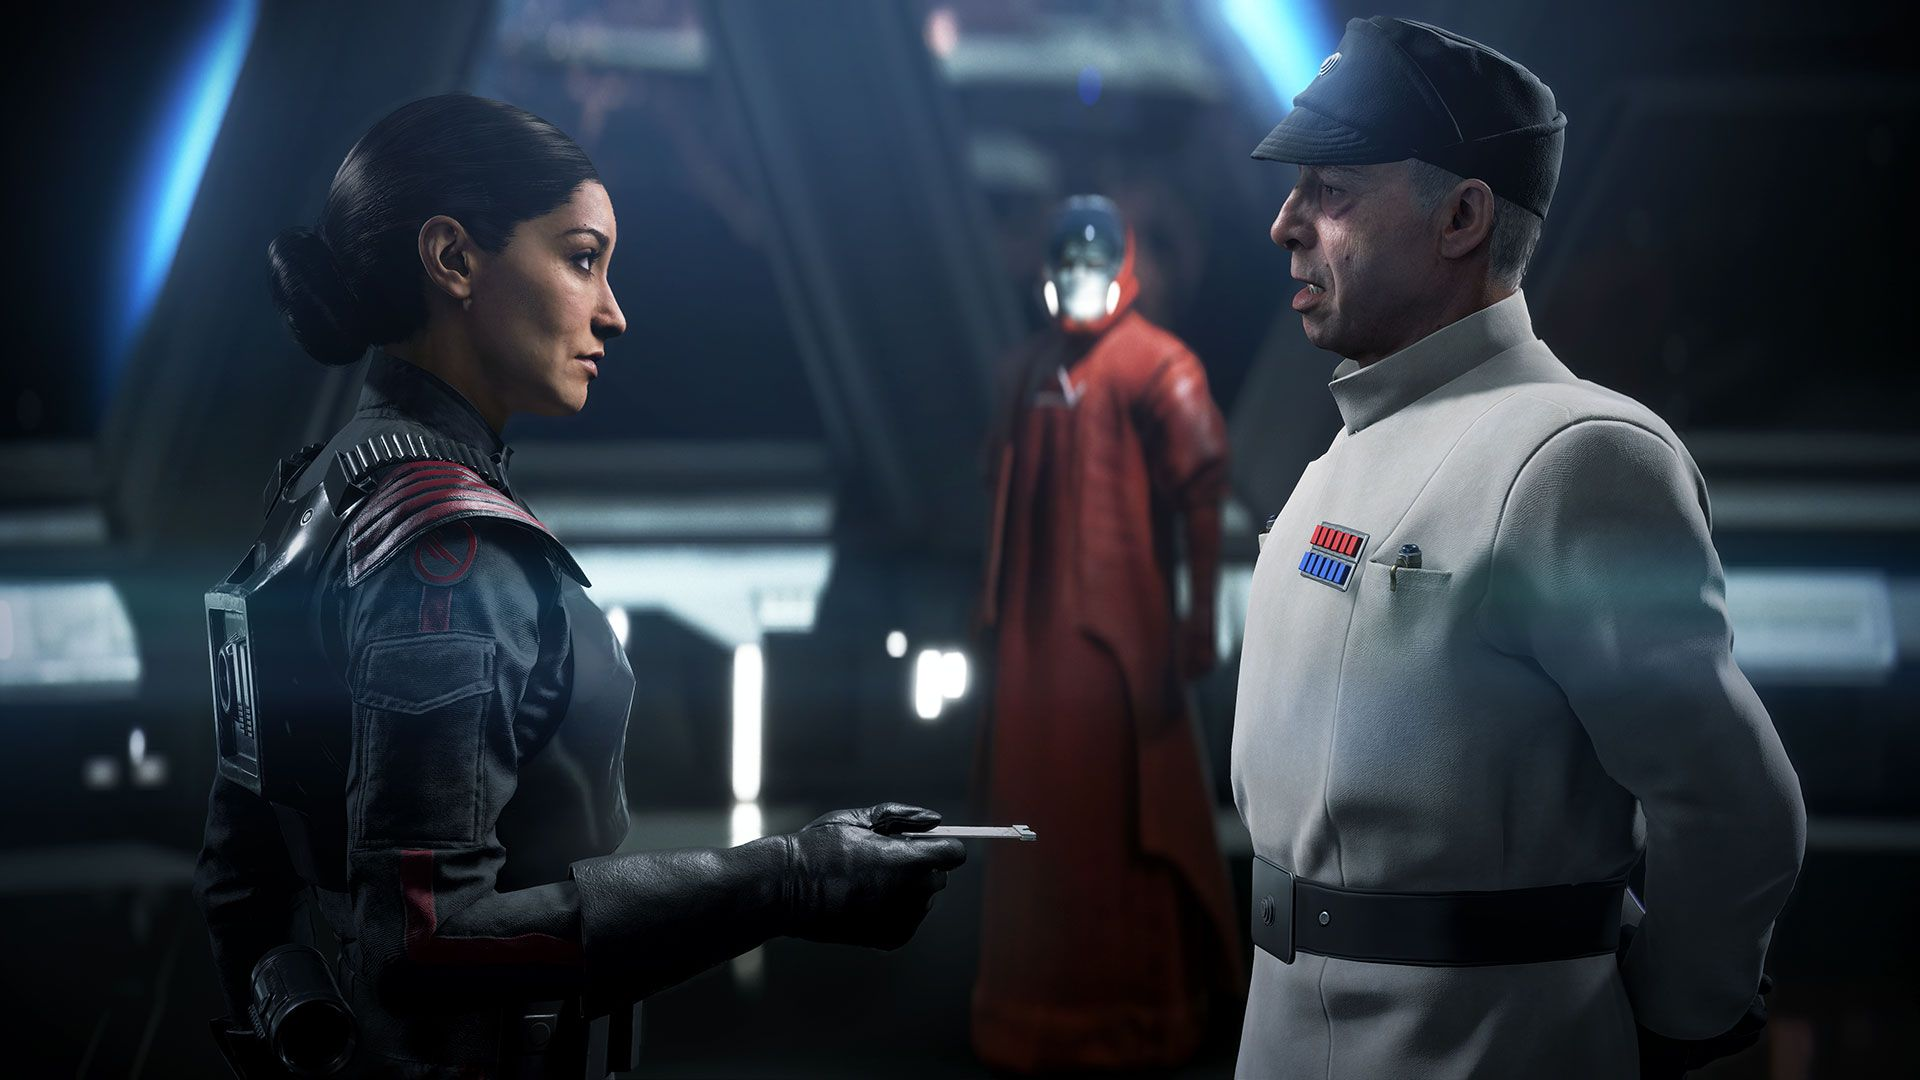 iden versio receiving orders in battlefront 2